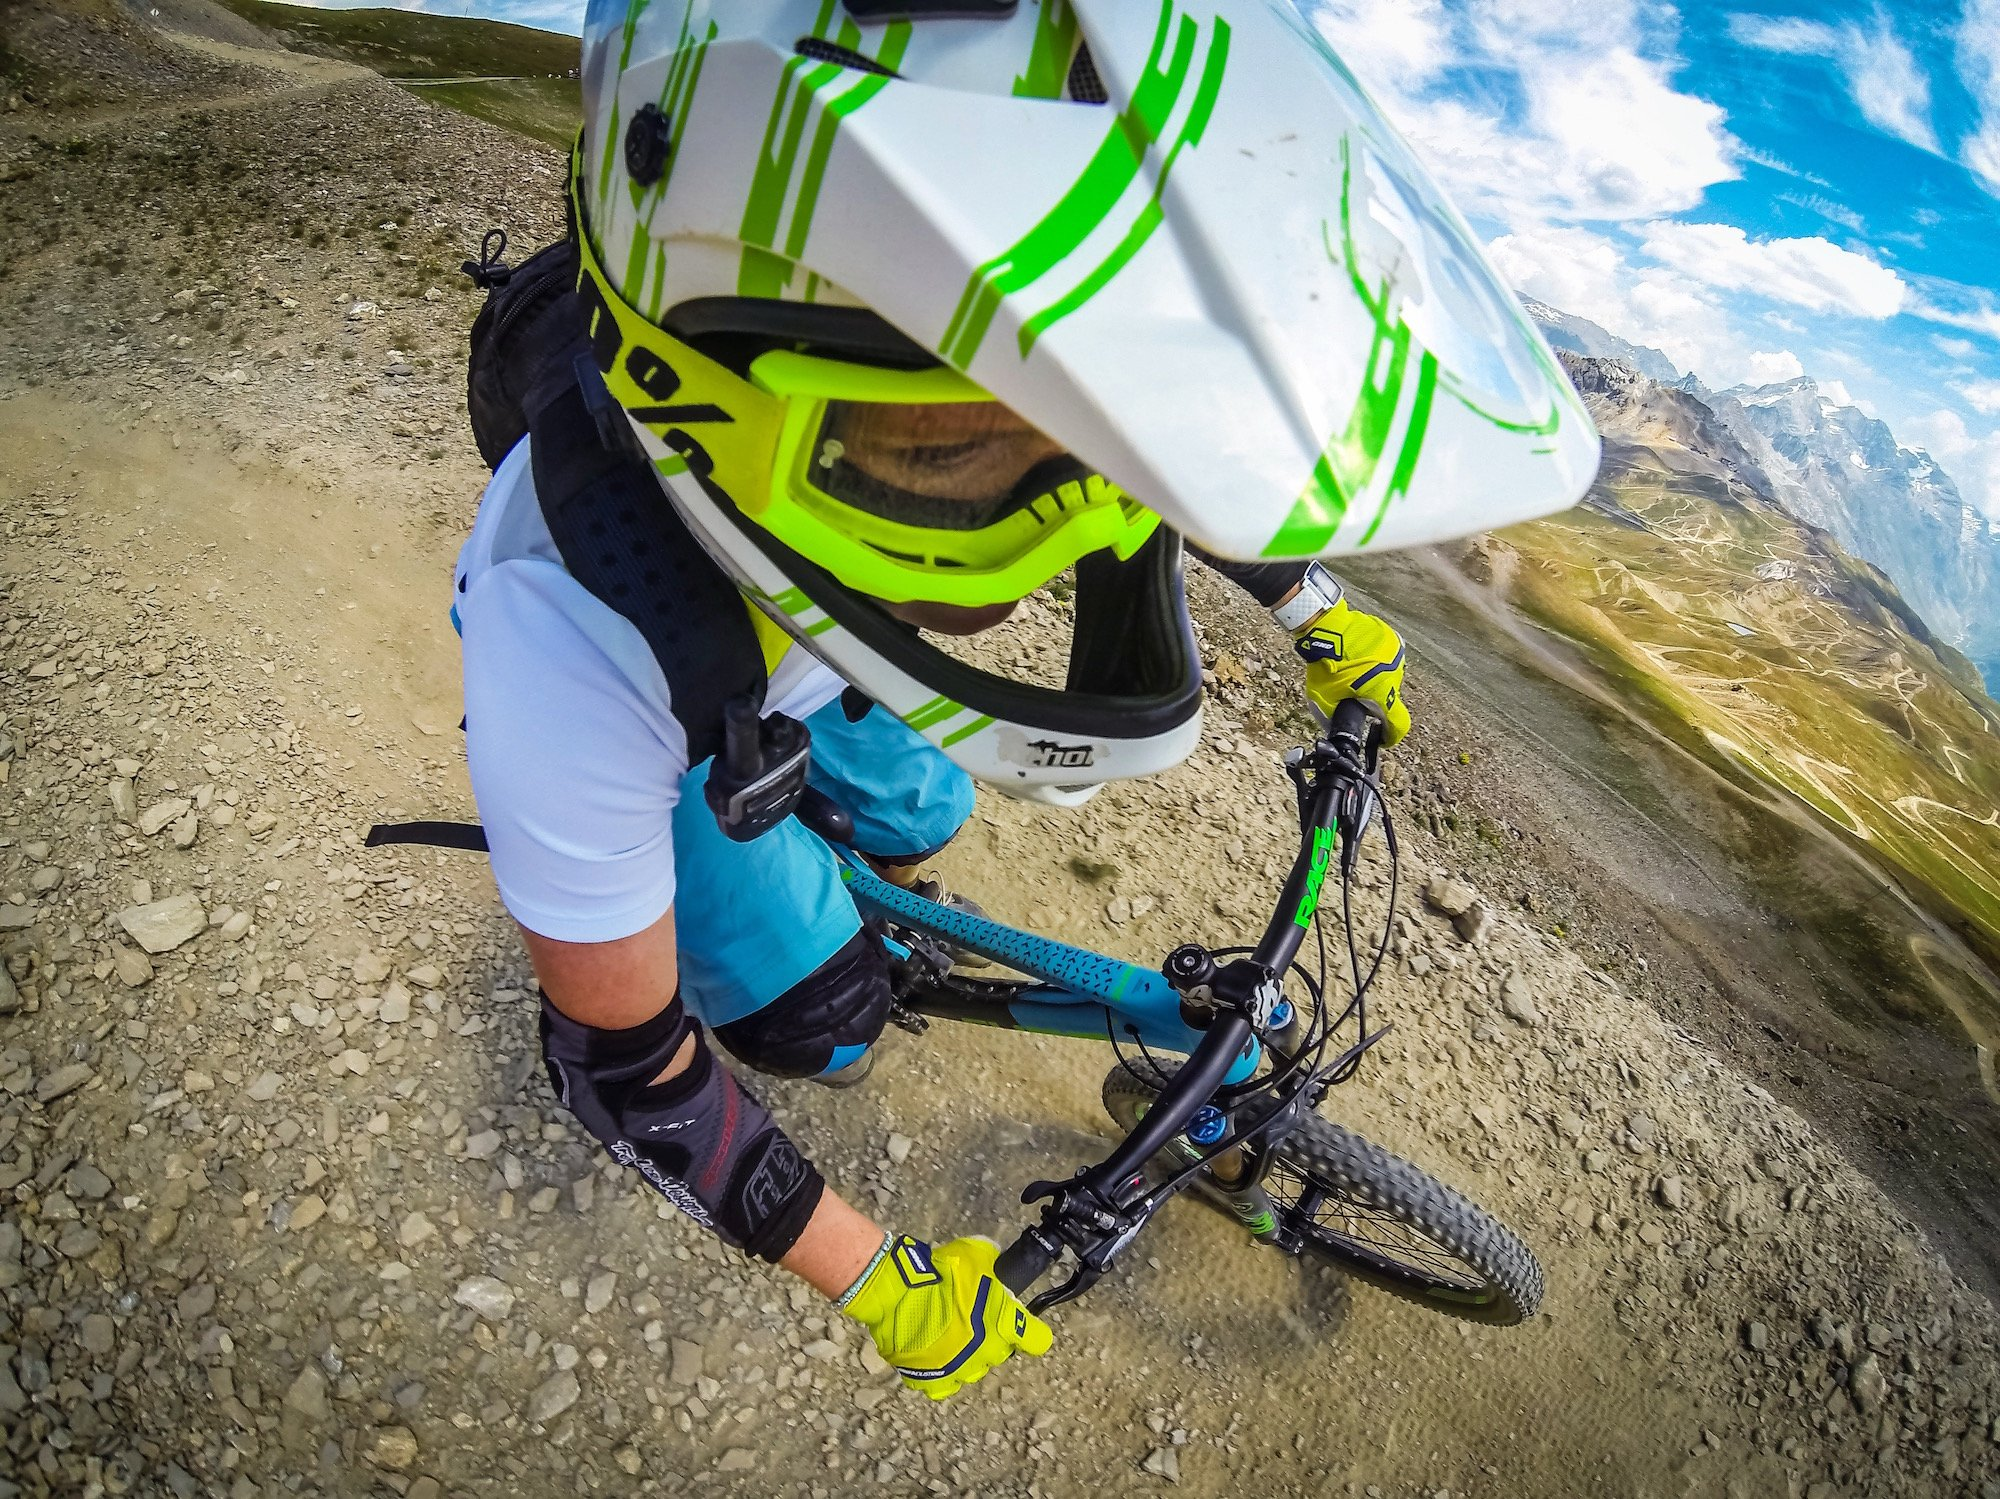 Fiona-Madden-Mountain-biking-gopro-france